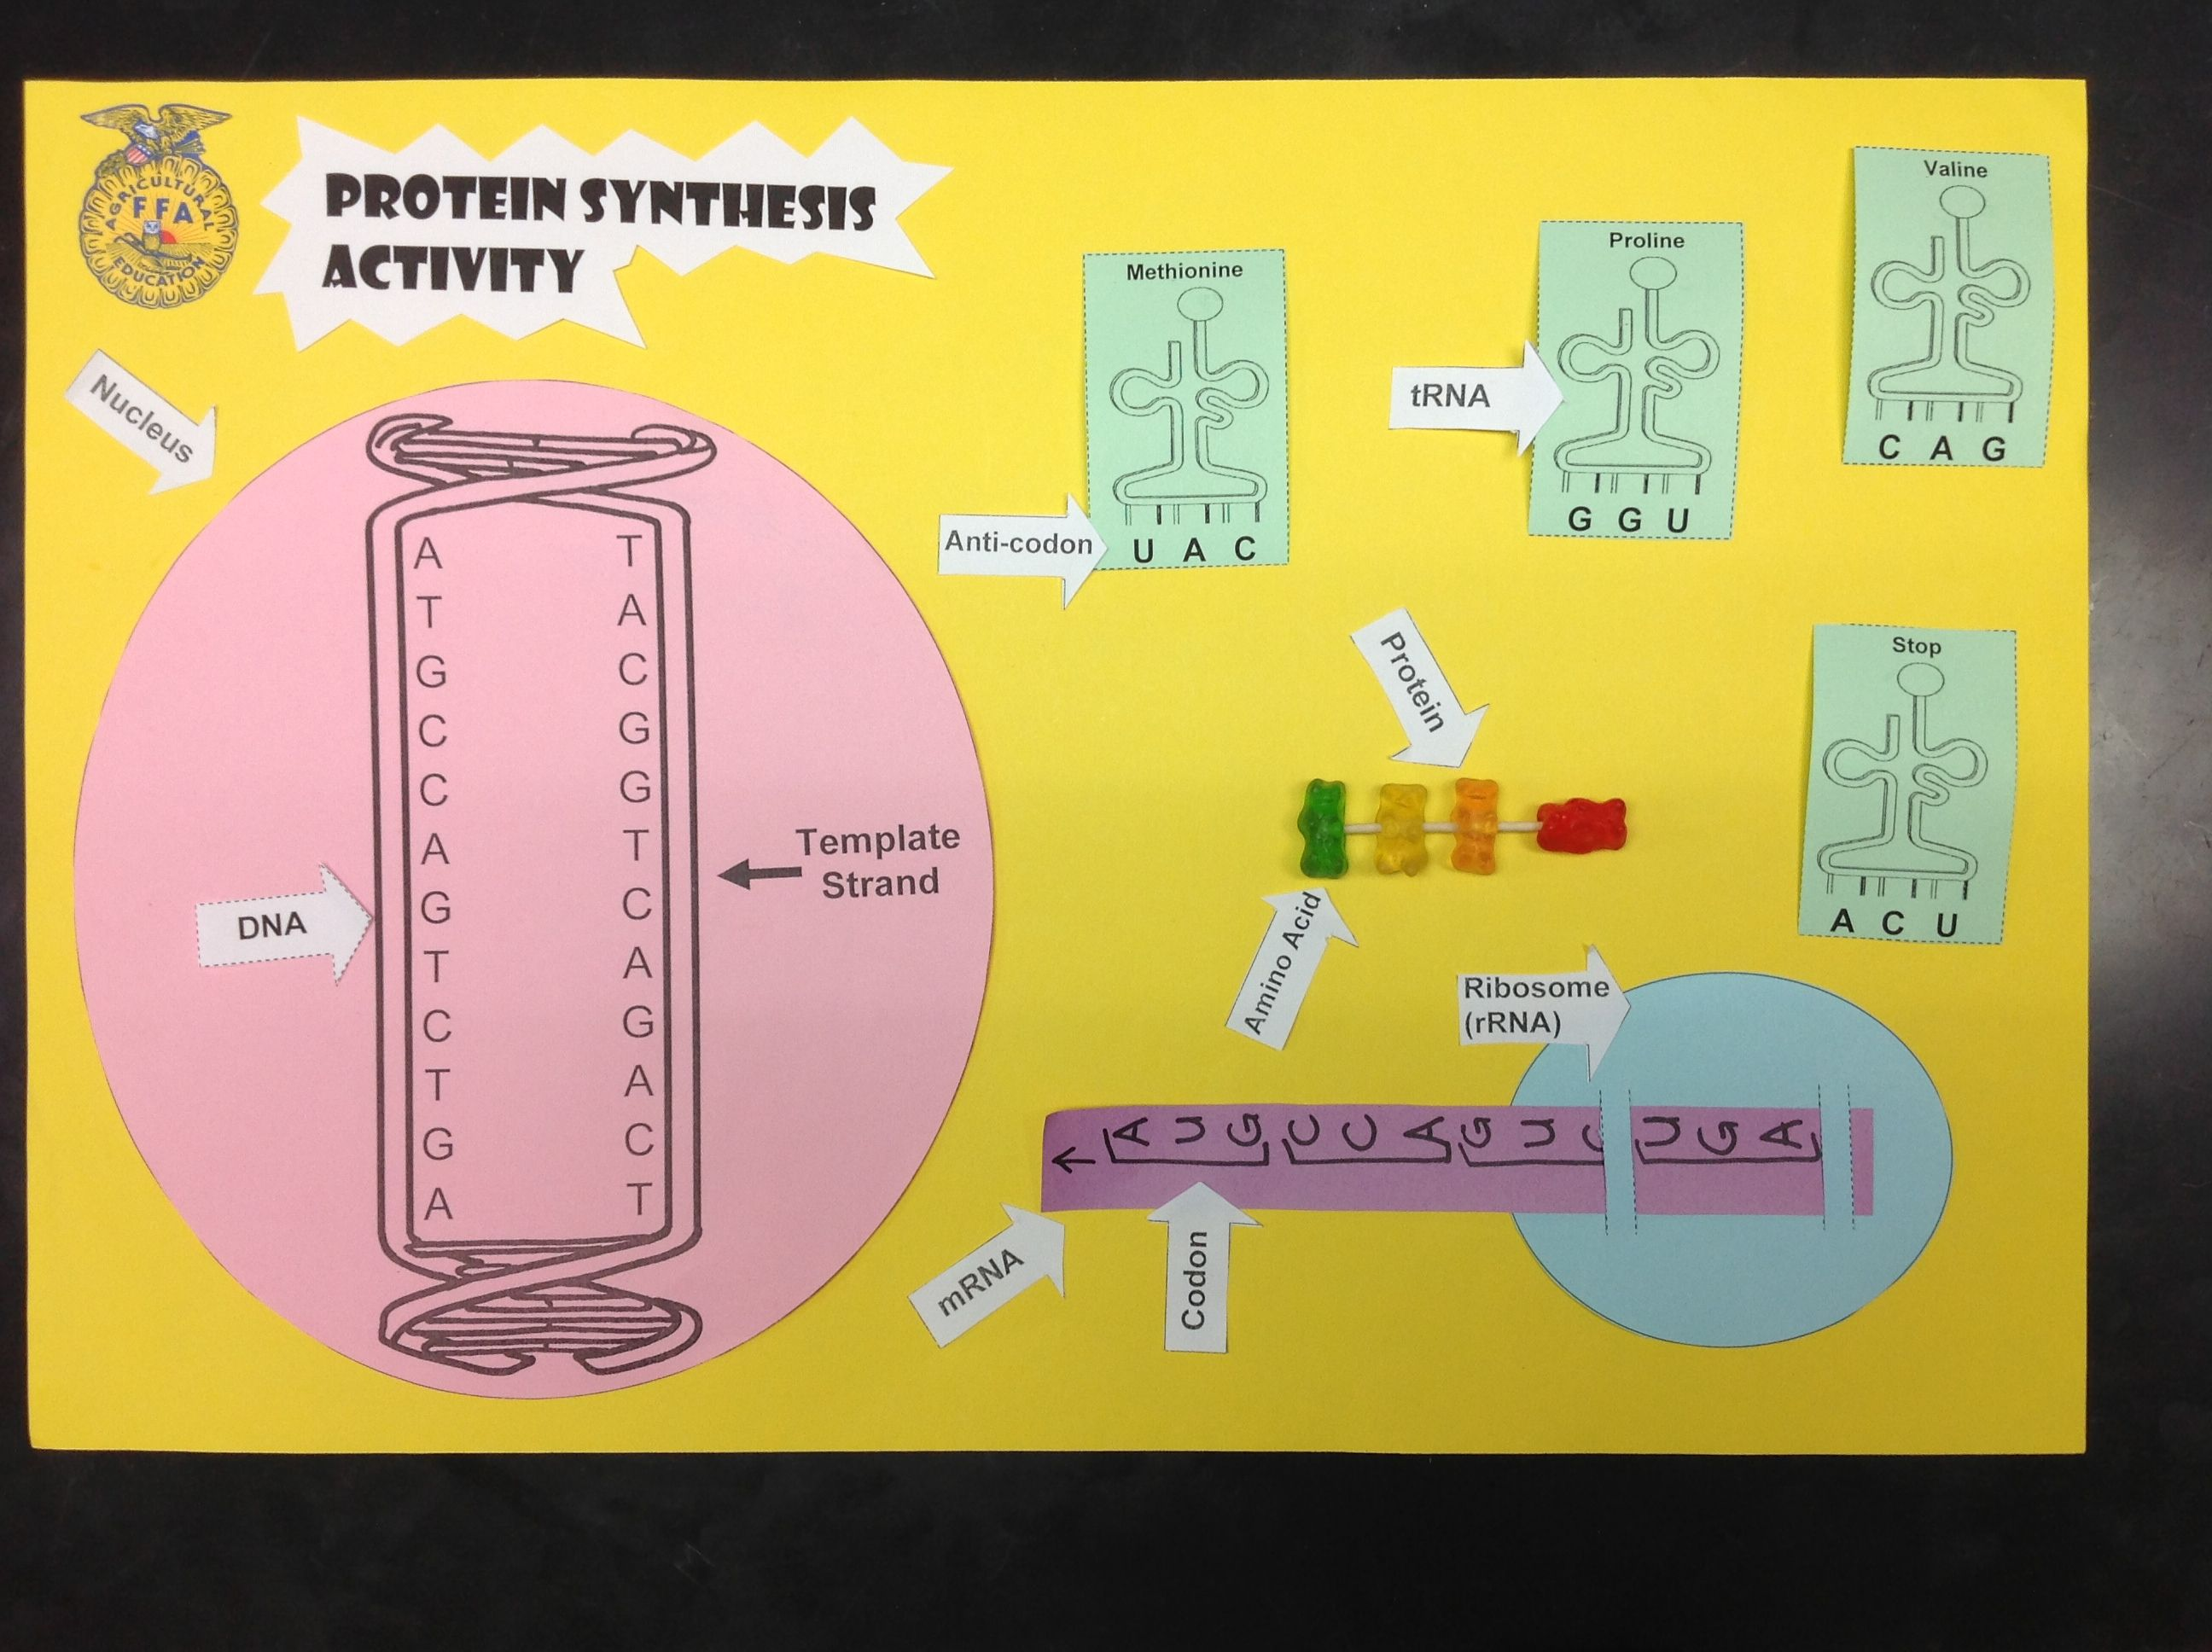 Check Out This Protein Synthesis Activity I Created For My